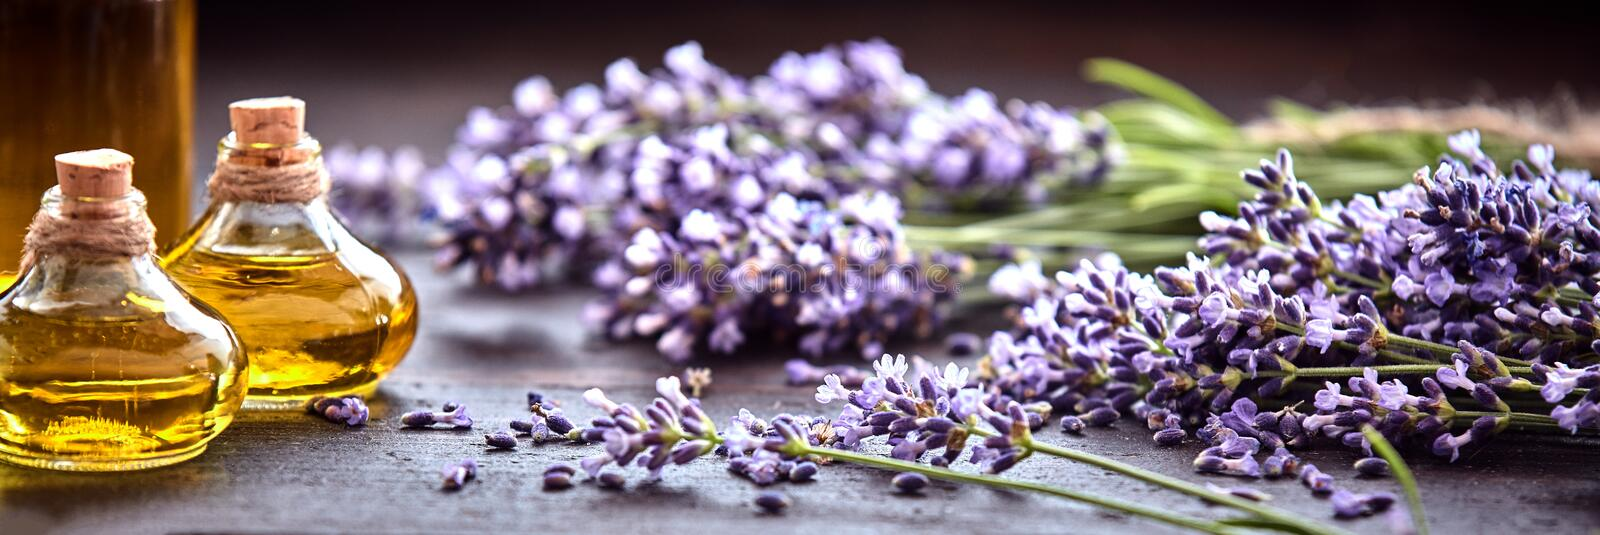 Panoramic banner of lavender with essential oil. Panoramic banner or header of fresh purple lavender with flacons of essential oil for aromatherapy, alternate royalty free stock photography